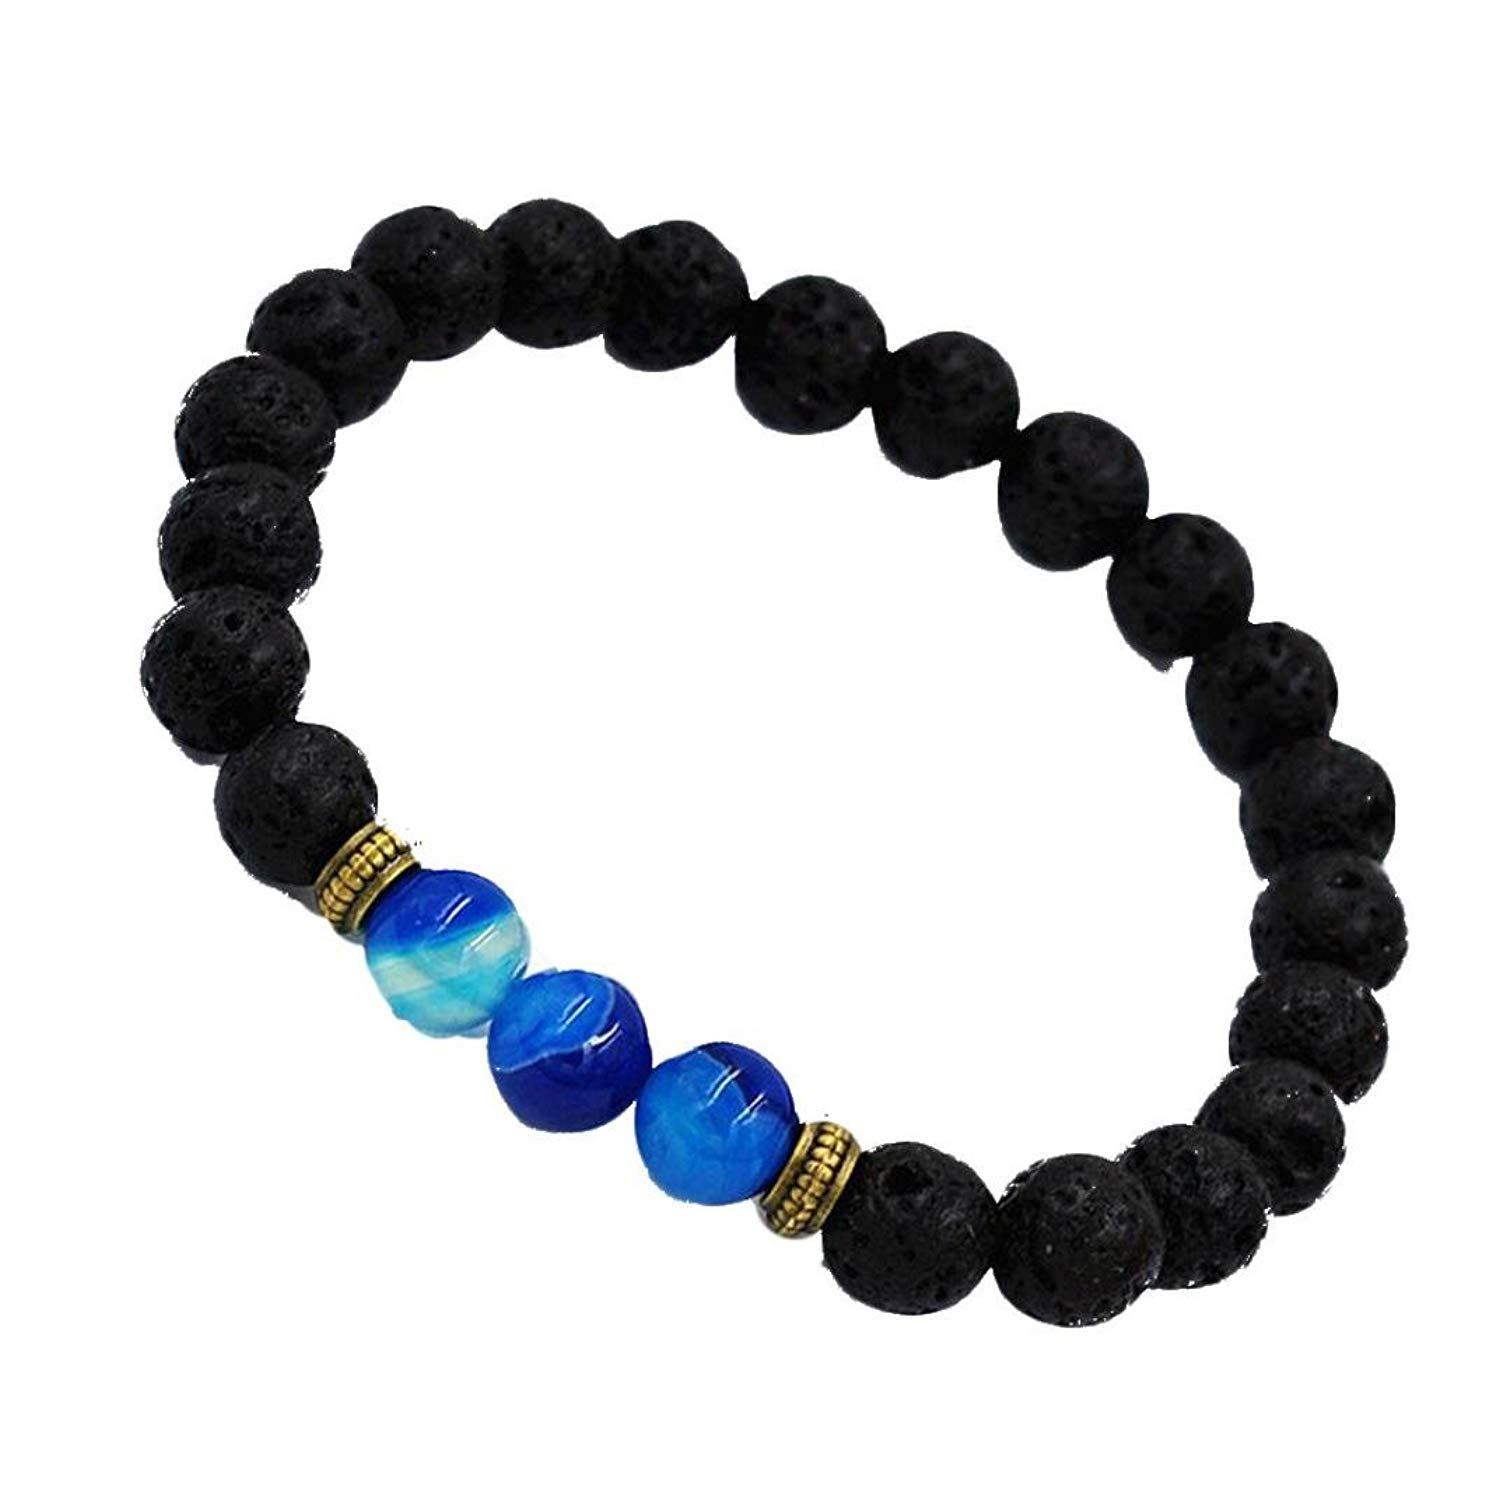 JSPOYOU Promotions! Womens Mens Alloy Agate Lava Stone Transport Bead Bracelet By